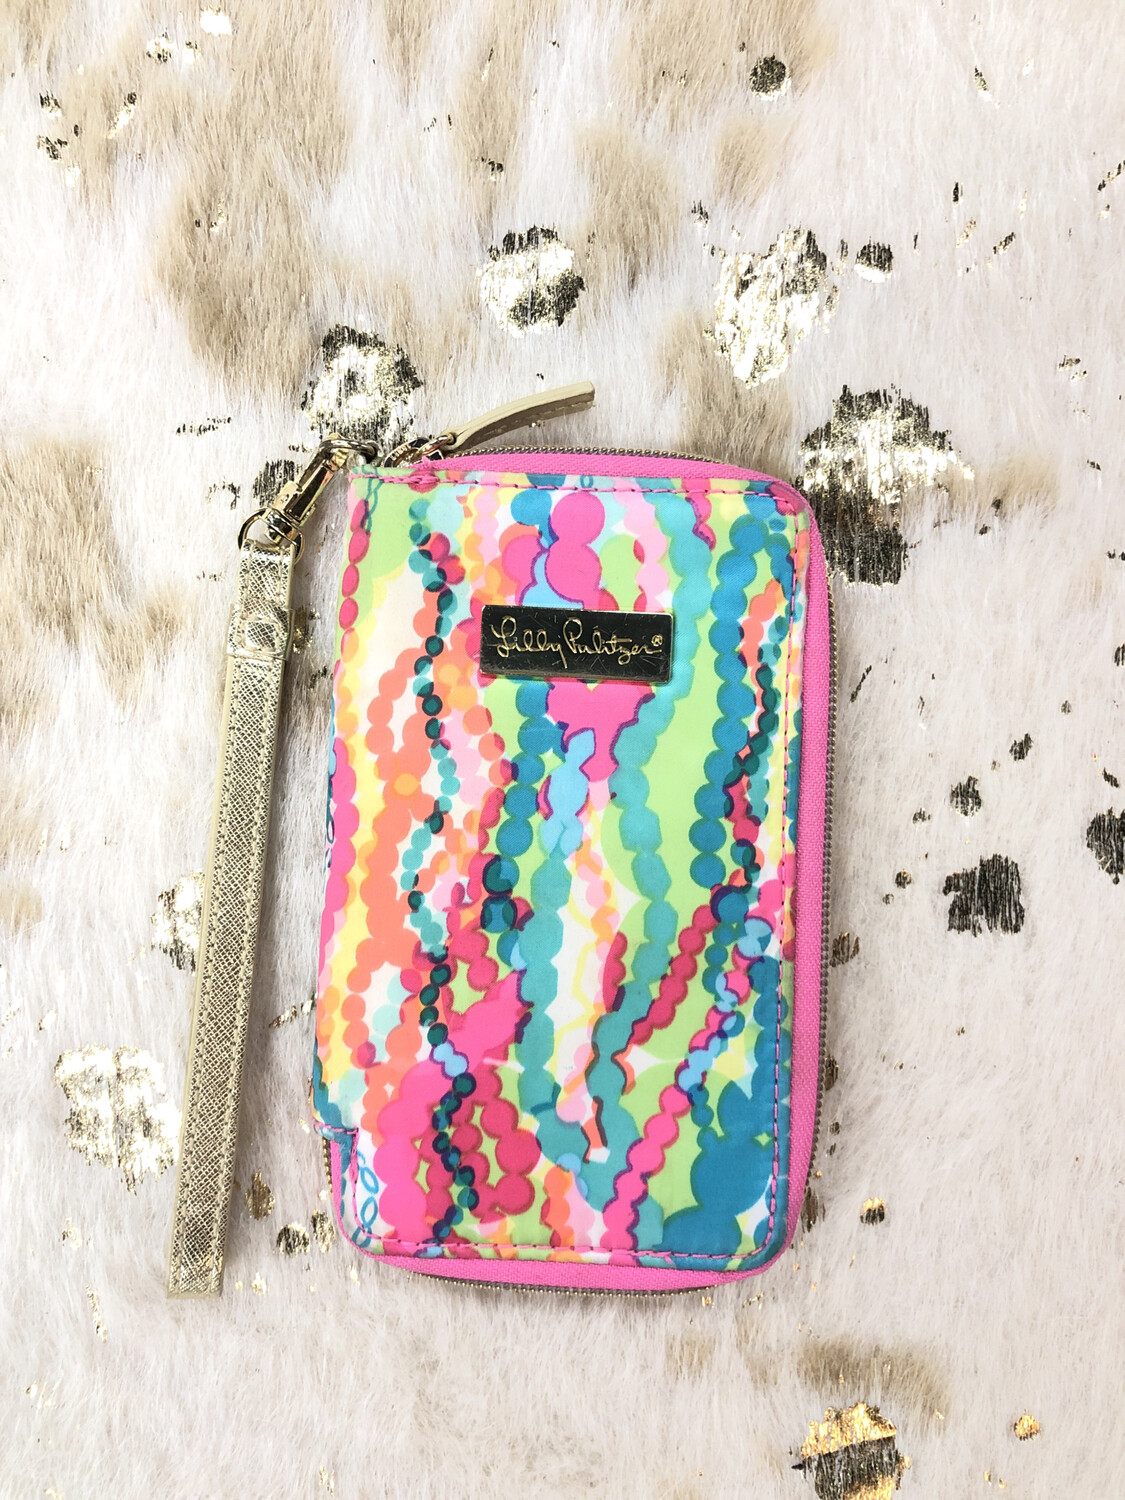 Lilly Pulitzer Colorful Bright Wallet Wristlet